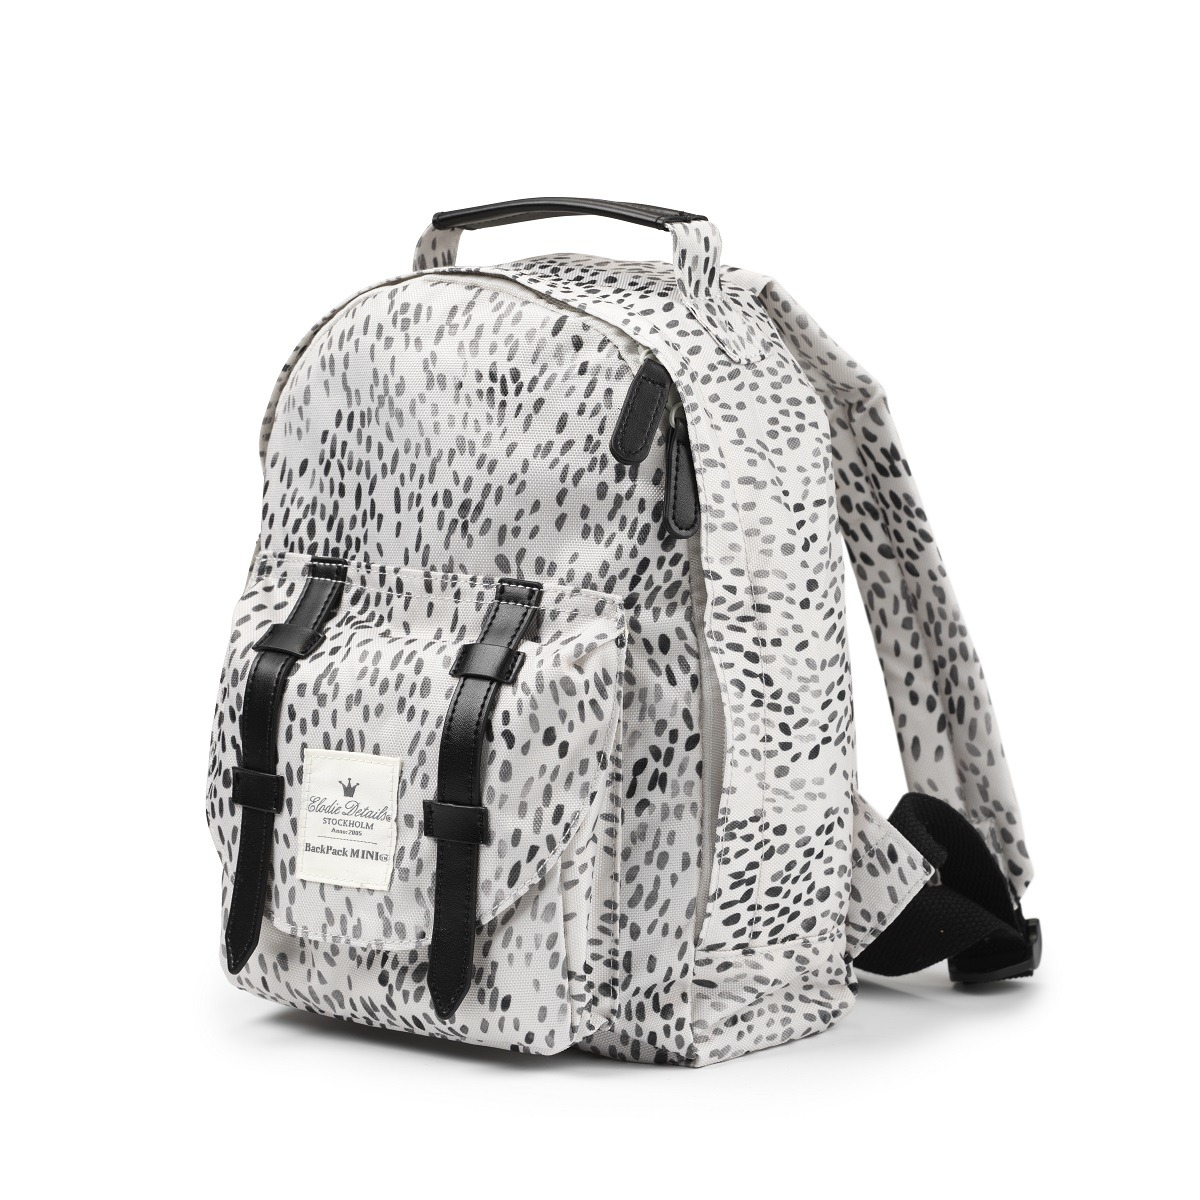 Elodie Details – BackPack MINI – Dots of Fauna